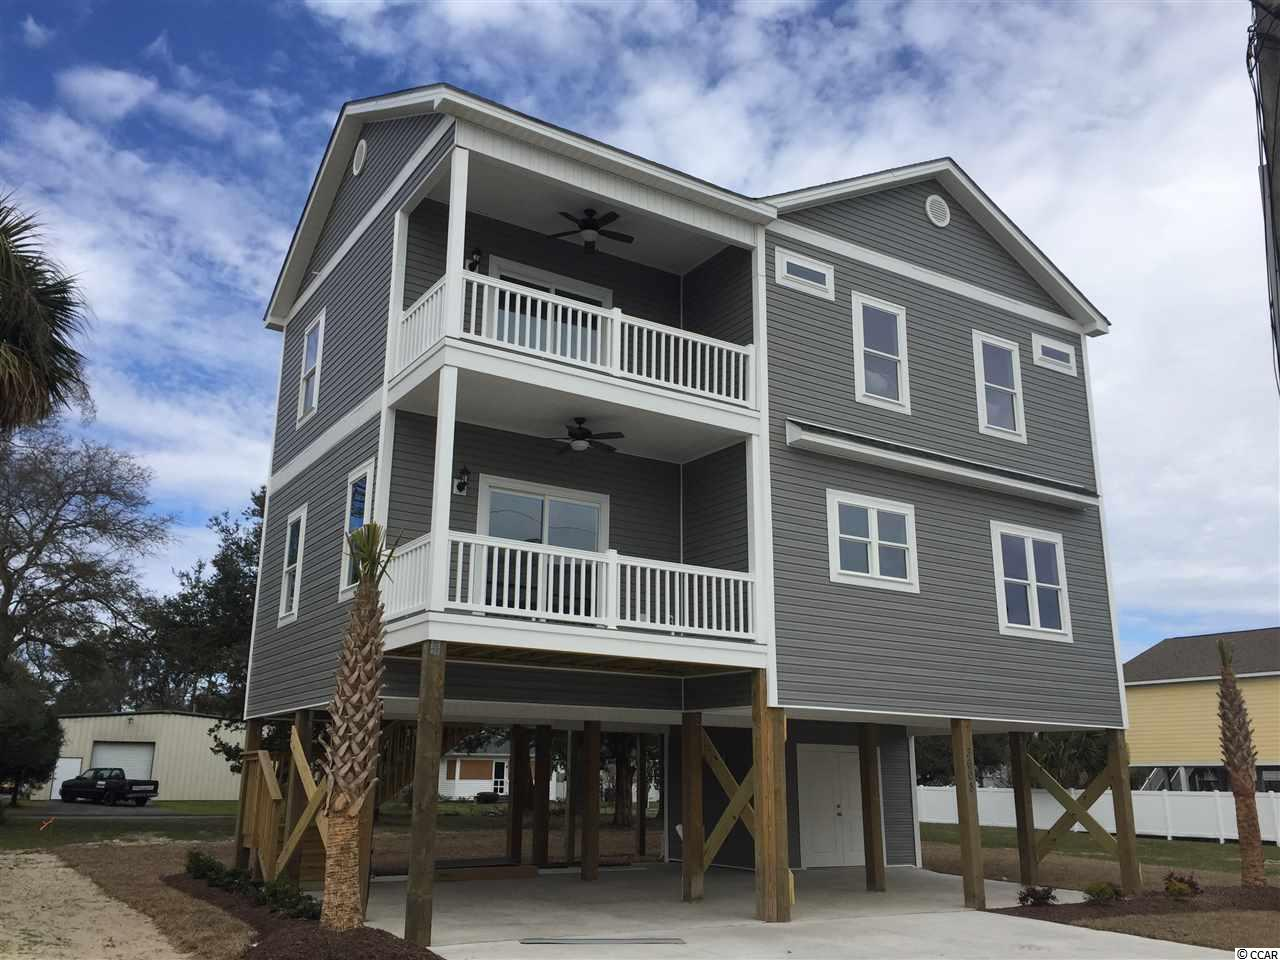 TAKE ADVANTAGE OF THIS RARE OPPORTUNITY OF BEING ABLE TO BUY A NEW CONSTRUCTION HOME WITH A OCEAN VIEW IN THE DESIRABLE WINDY HILL SECTION OF NORTH MYRTLE BEACH. ONE BLOCK OFF OF THE OCEAN, SHORT WALK TO RESTURANT AND CONVENIENCE STORE. GOLF CART RIDE AWAY FROM SHOPPING, RESTURANTS AND ENTERTAINMENT AT BAREFOOT LANDING.